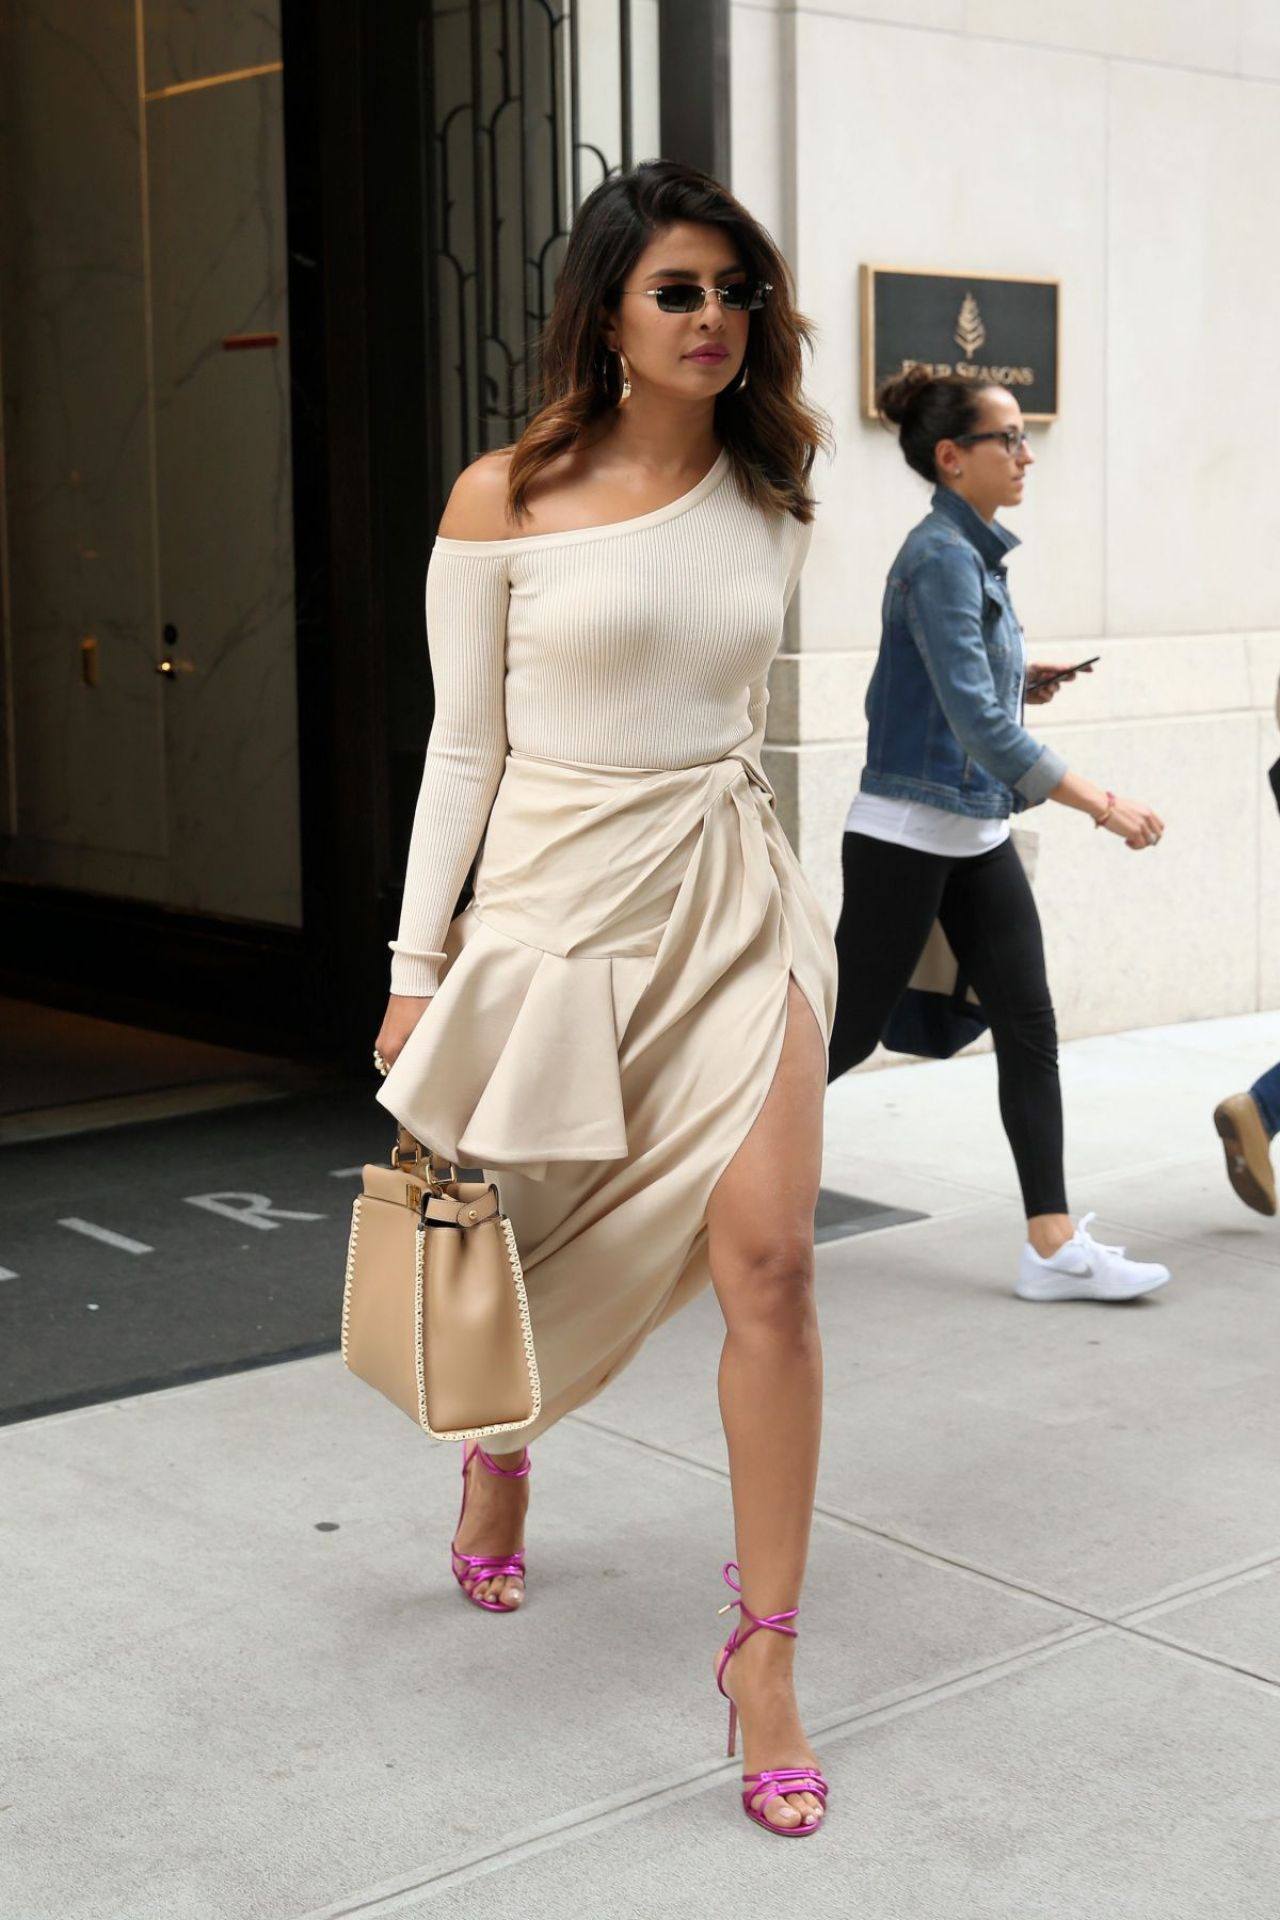 http://celebmafia.com/wp-content/uploads/2018/06/priyanka-chopra-out-in-new-york-06-13-2018-7.jpg